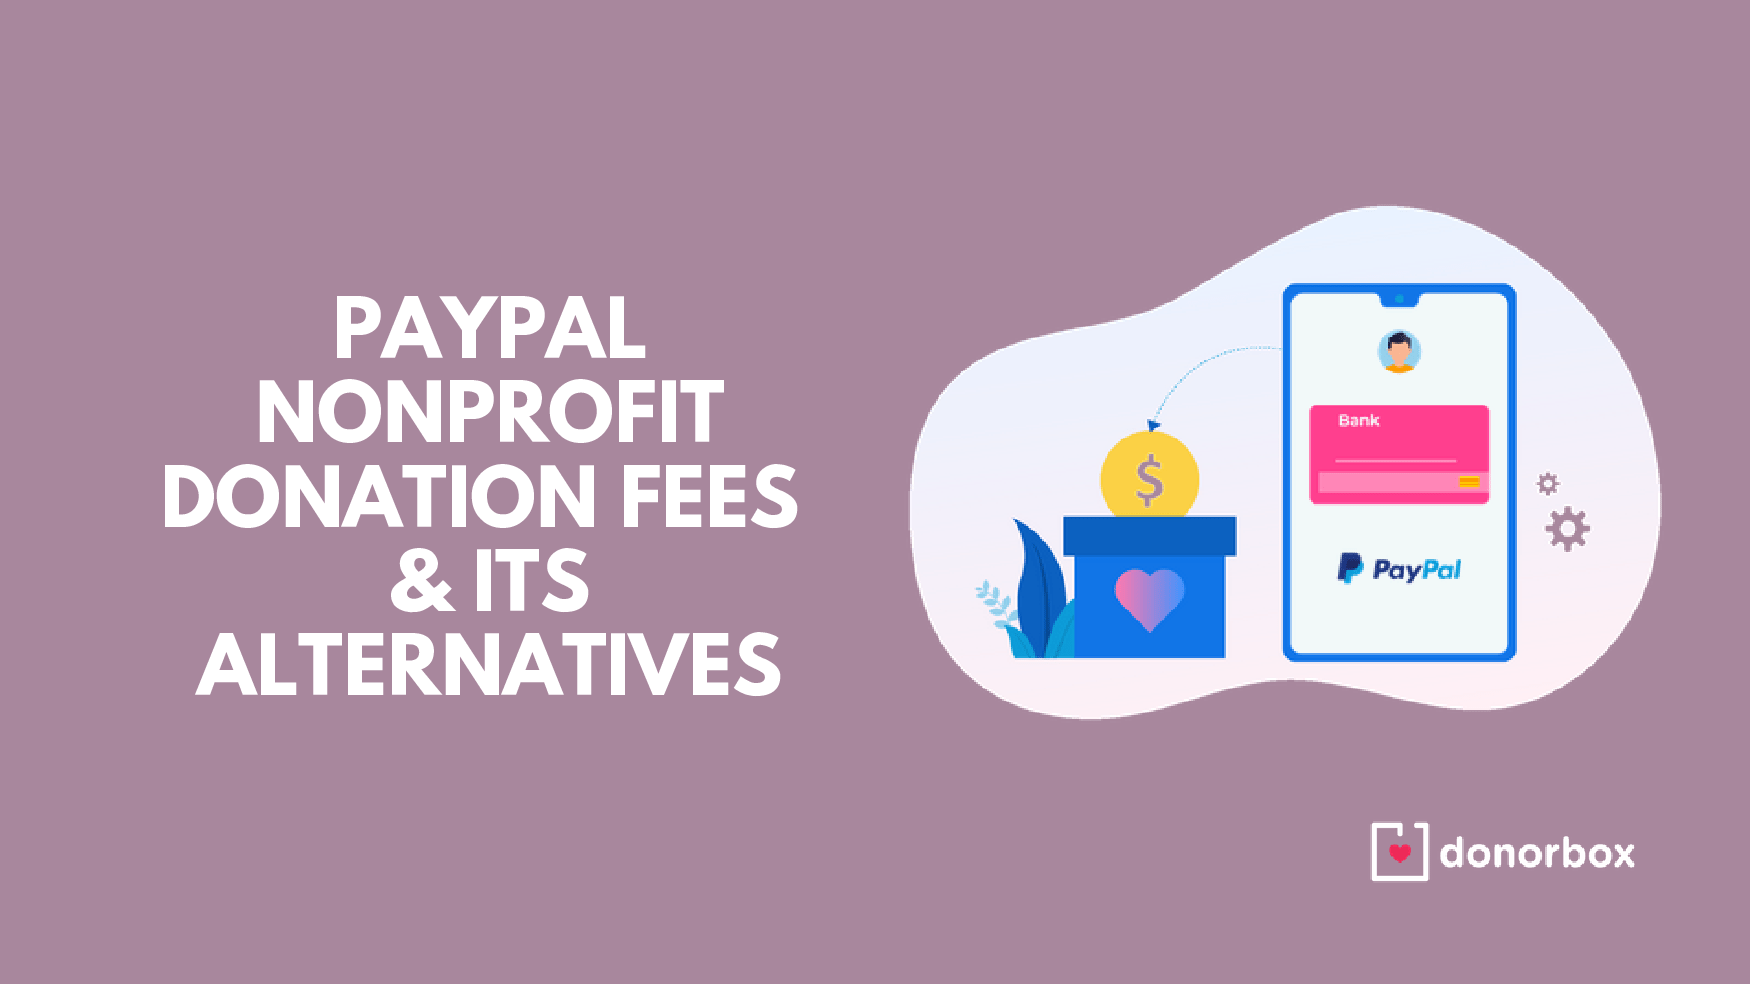 PayPal Nonprofit Donation Fees in 2021 & Its Alternatives | Donorbox